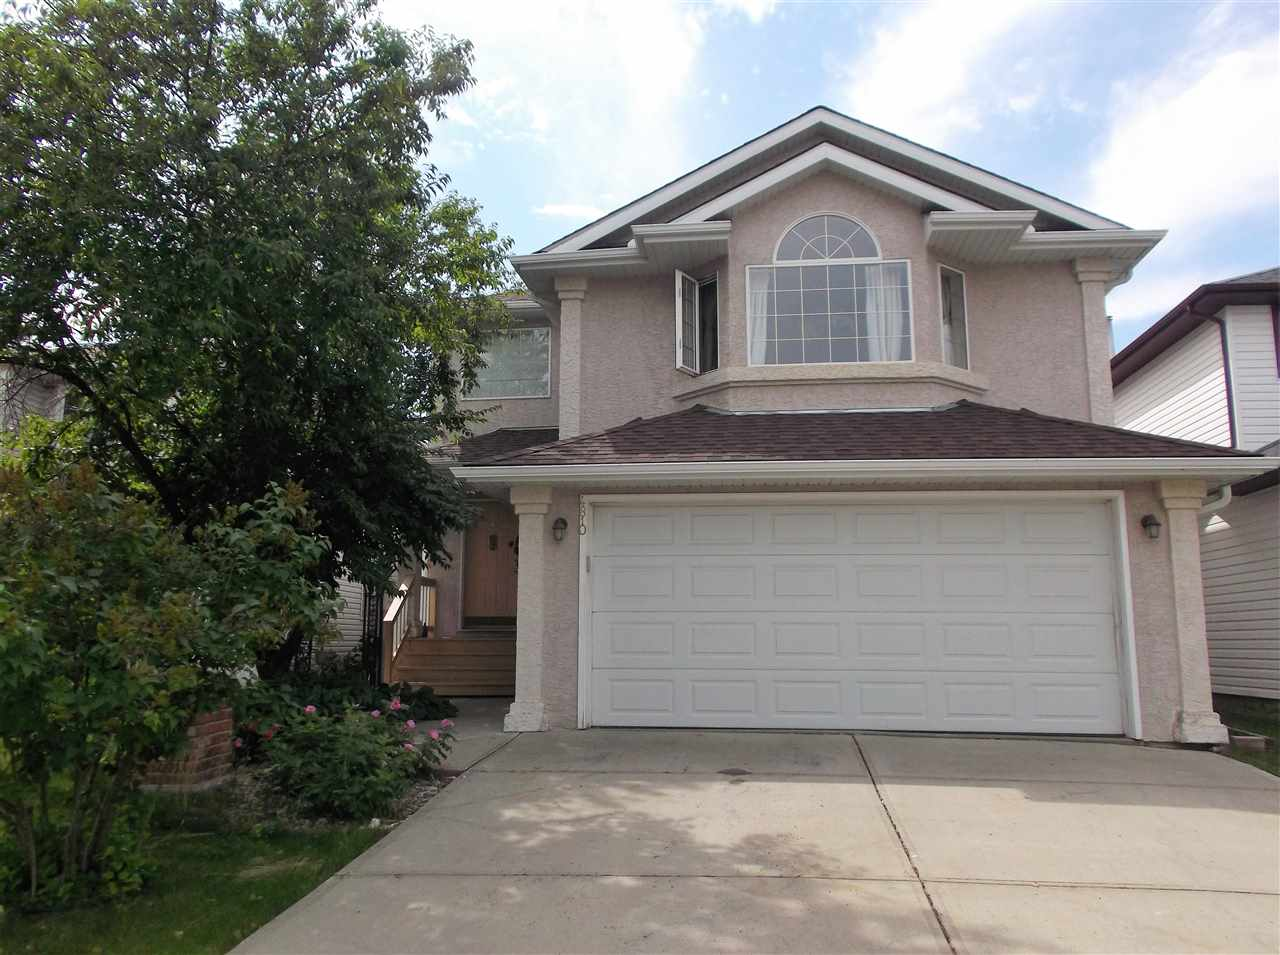 Main Photo: 4810 188 Street in Edmonton: Zone 20 House for sale : MLS® # E4073878